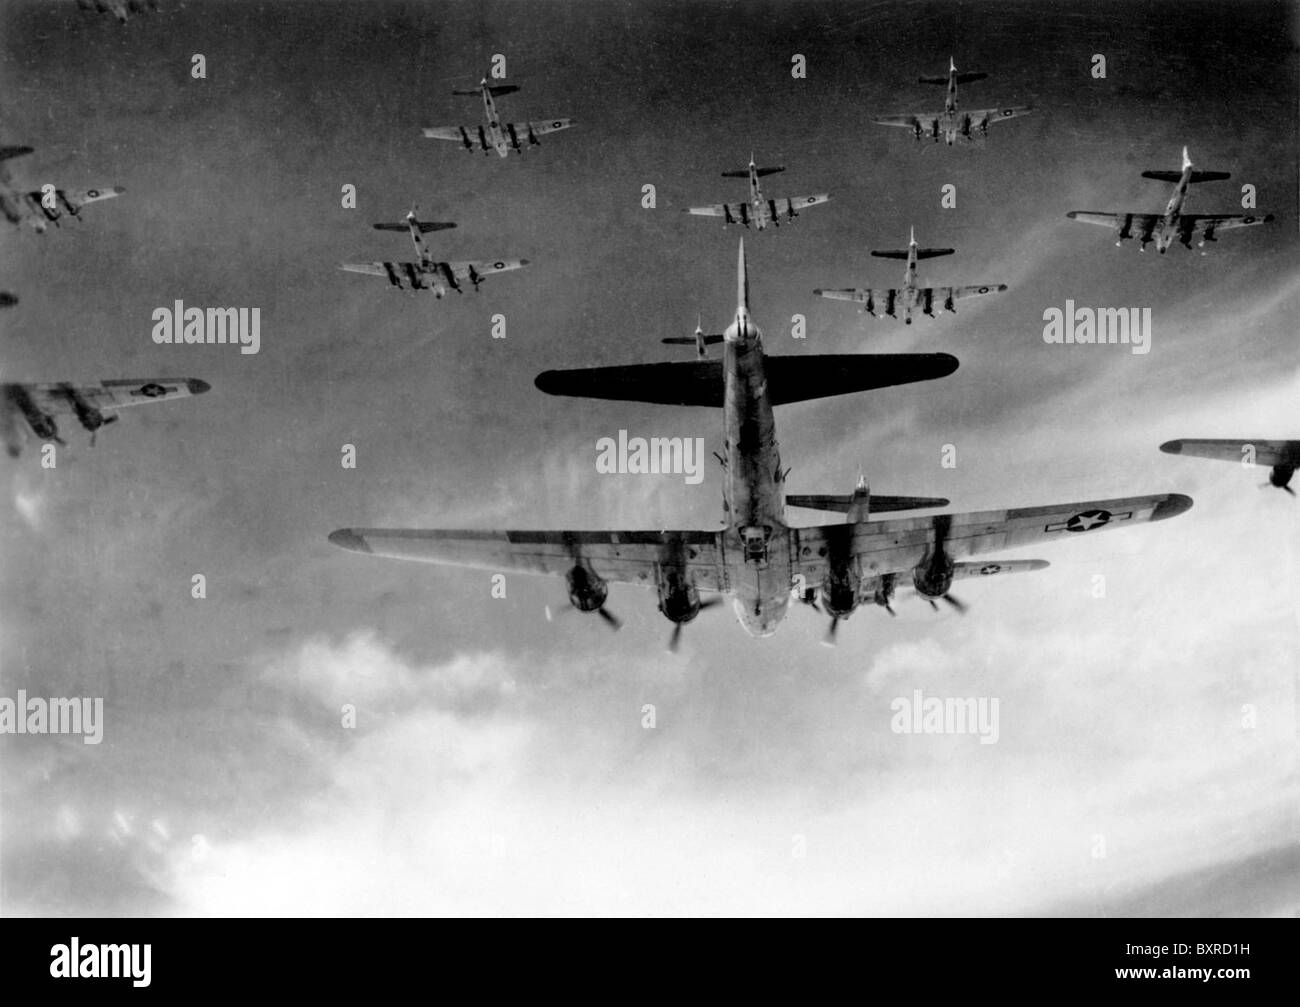 B-17 Flying Fortress bombers during a World War 2 bombing mission. Stock Photo